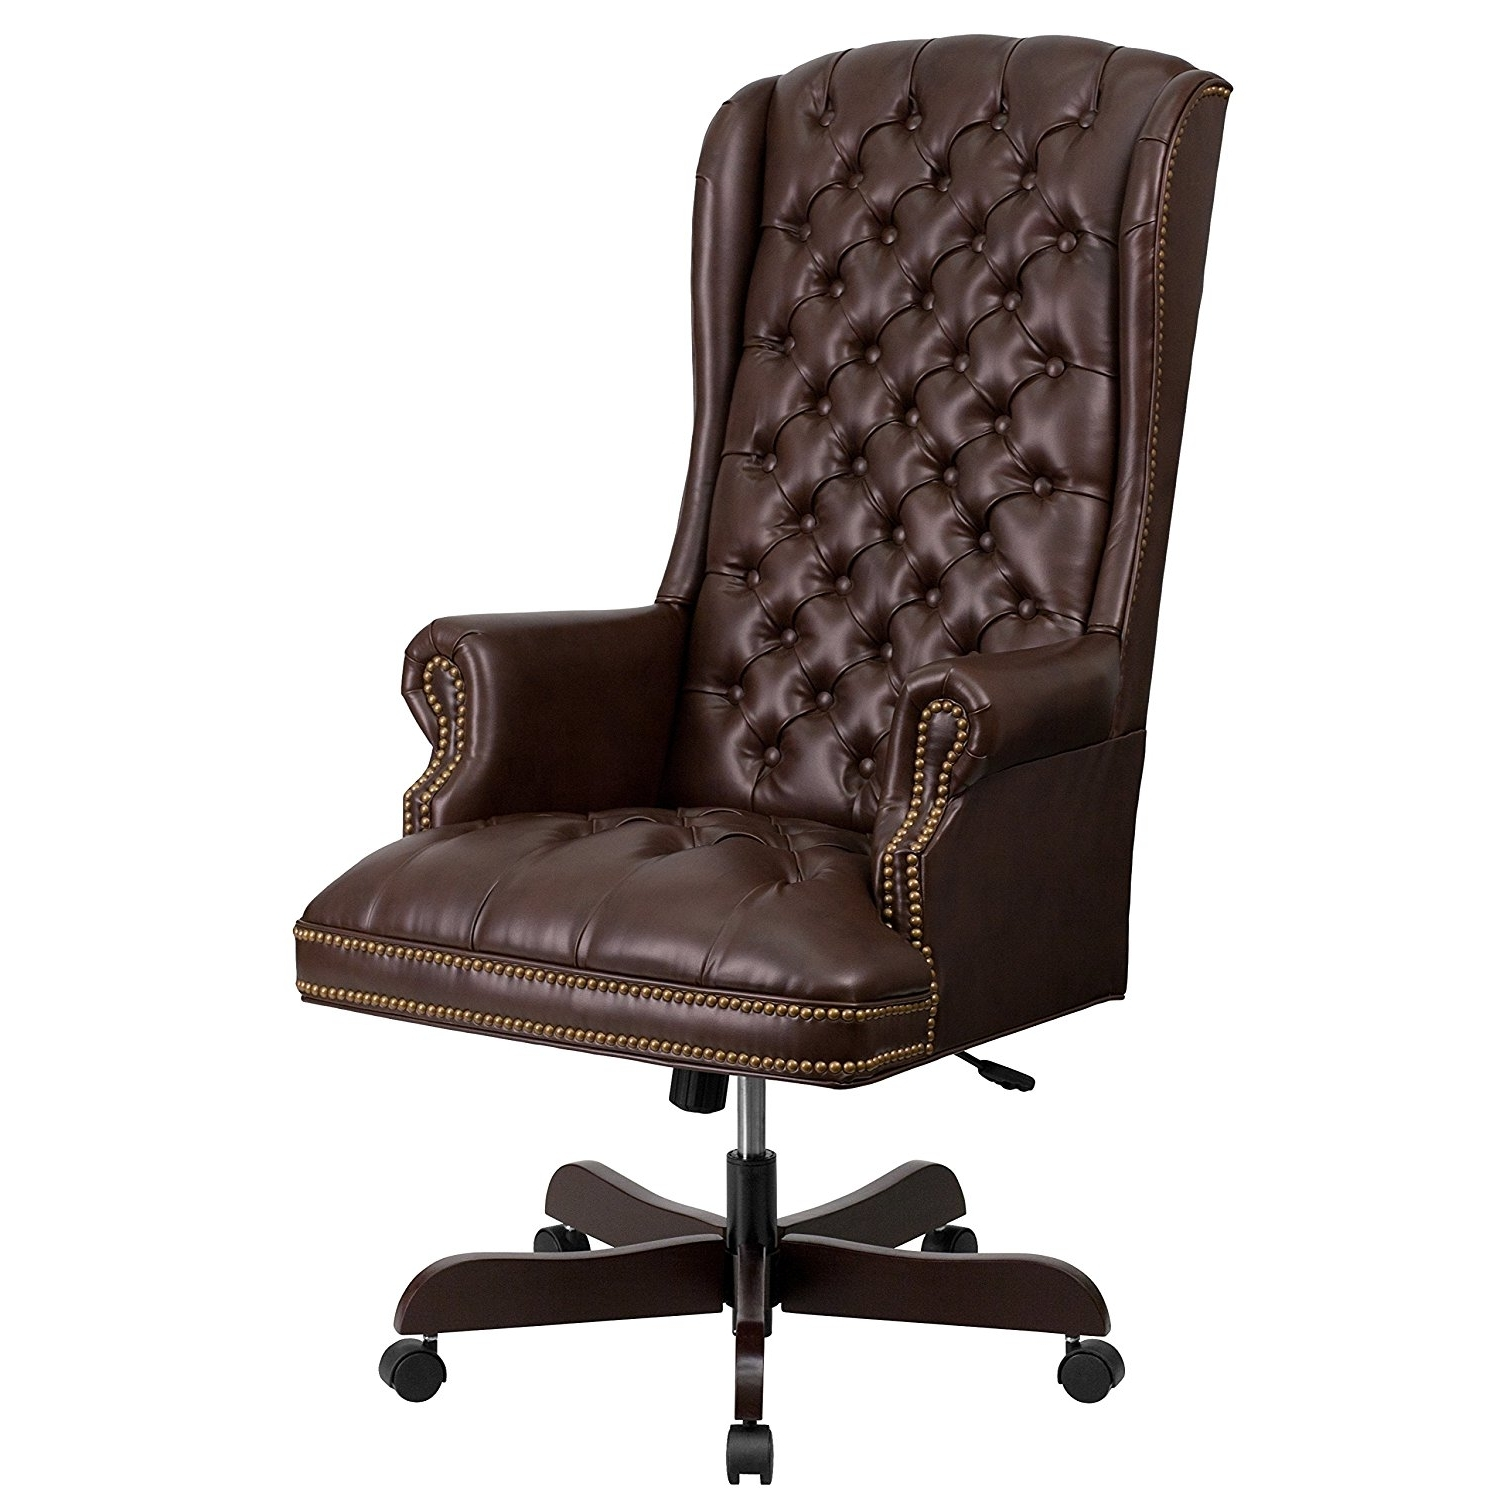 Chair : High Back Executive Leather Office Chair Verona Brown With Regard To Well Known Verona Cream Executive Leather Office Chairs (View 7 of 20)